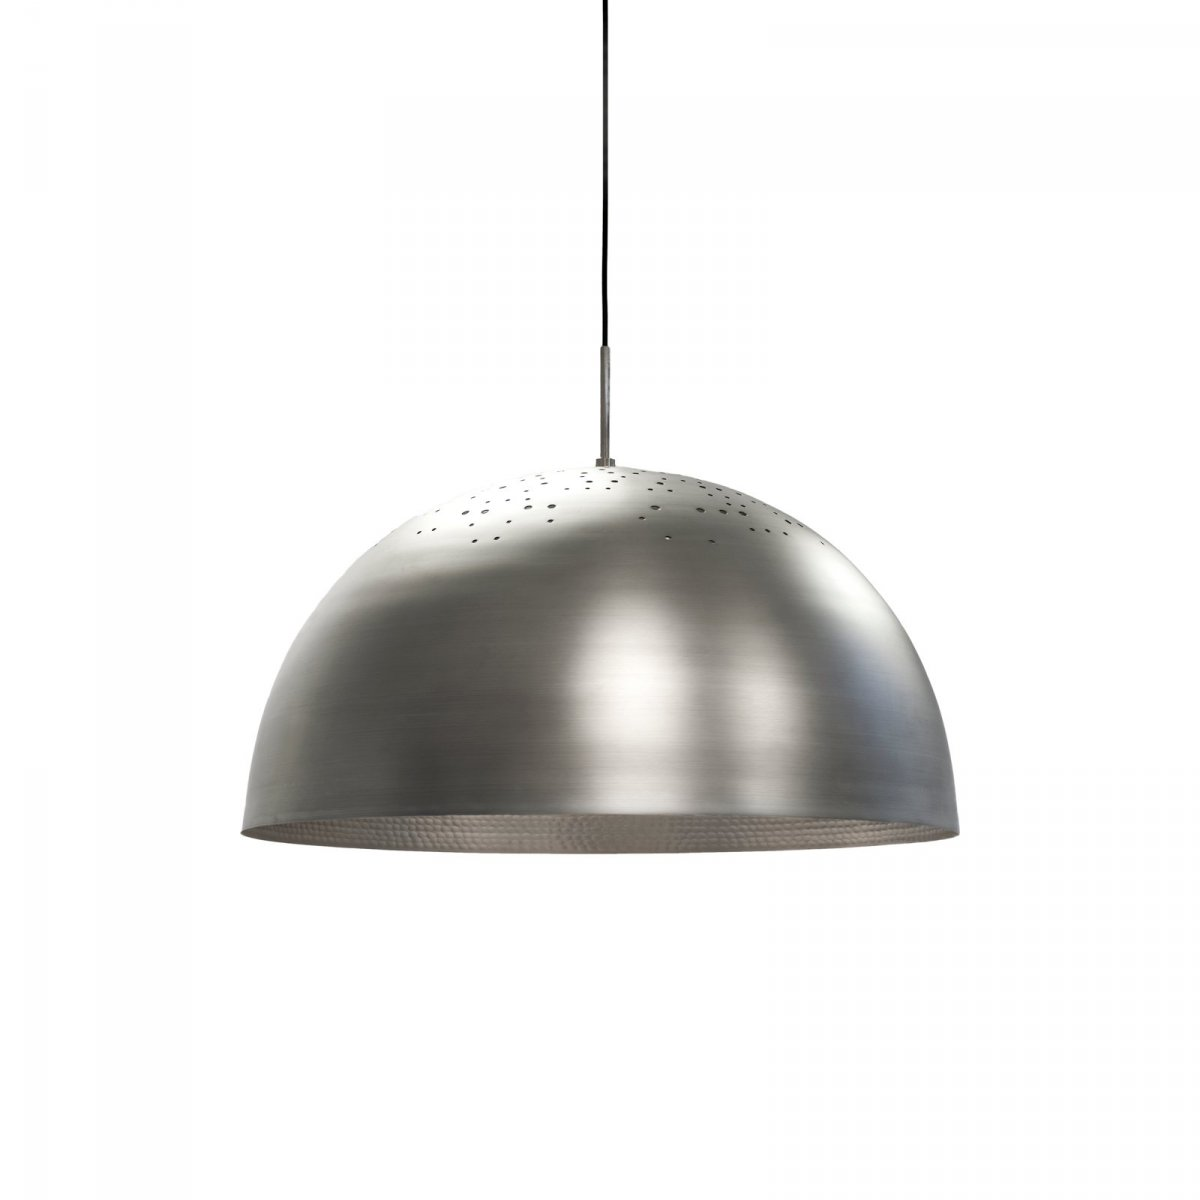 Shade Light Pendant, aluminum.